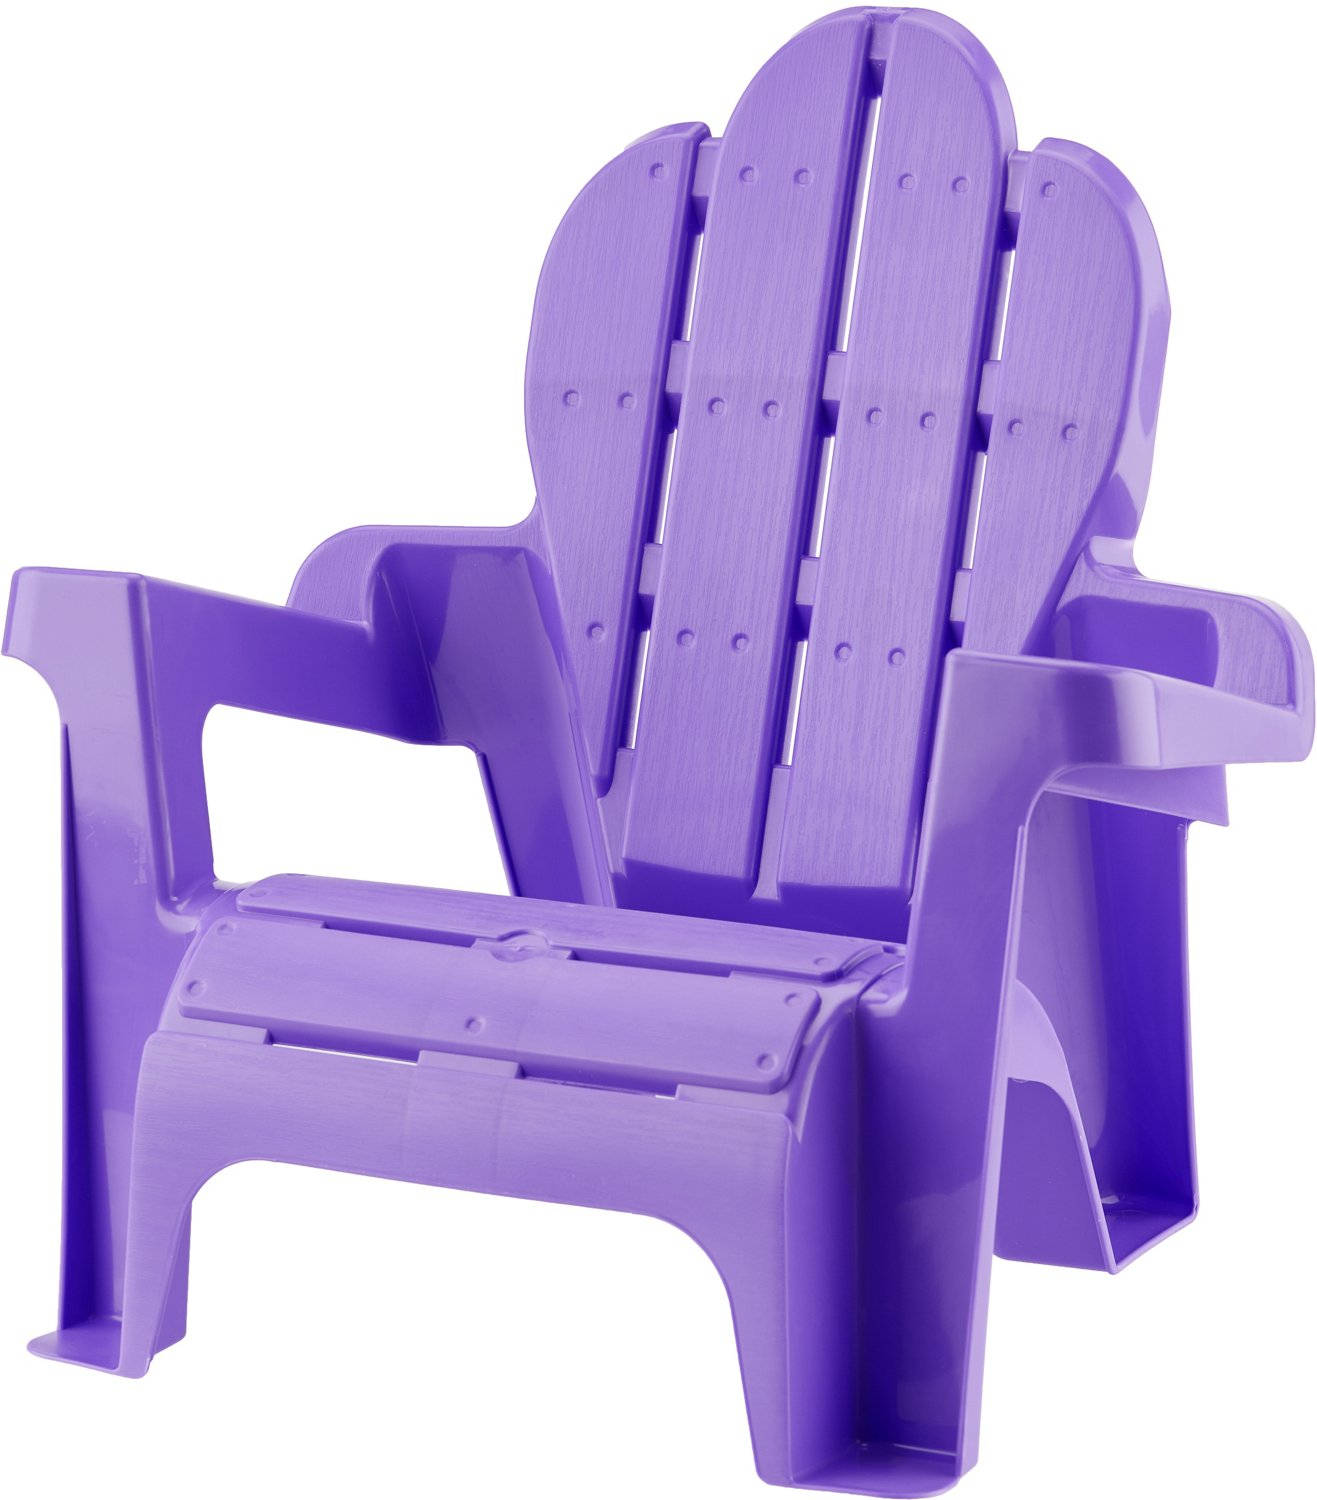 academy sports patio chairs wedding chair cover hire bournemouth furniture   sets, chairs, swings & more outdoor sets